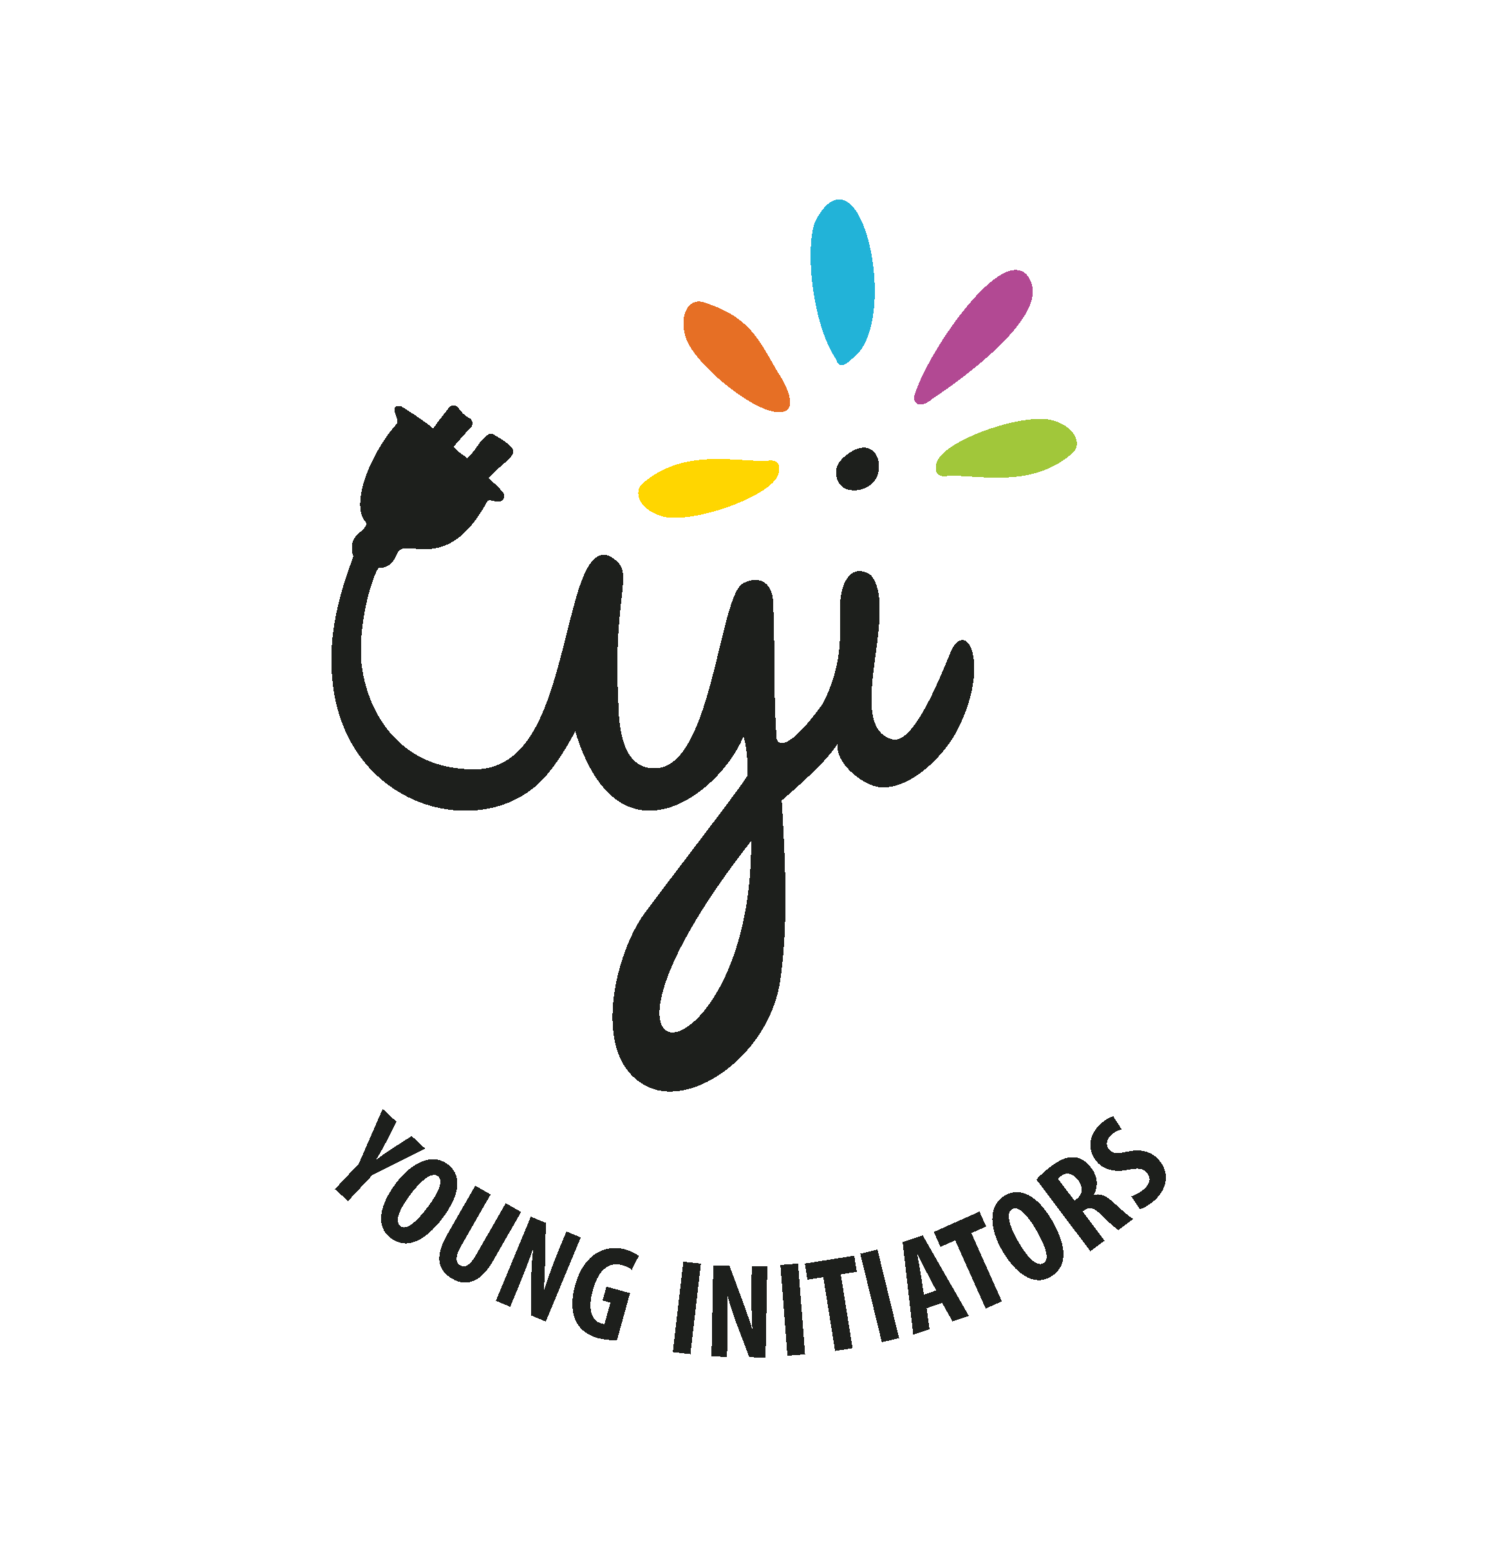 Young Initiators